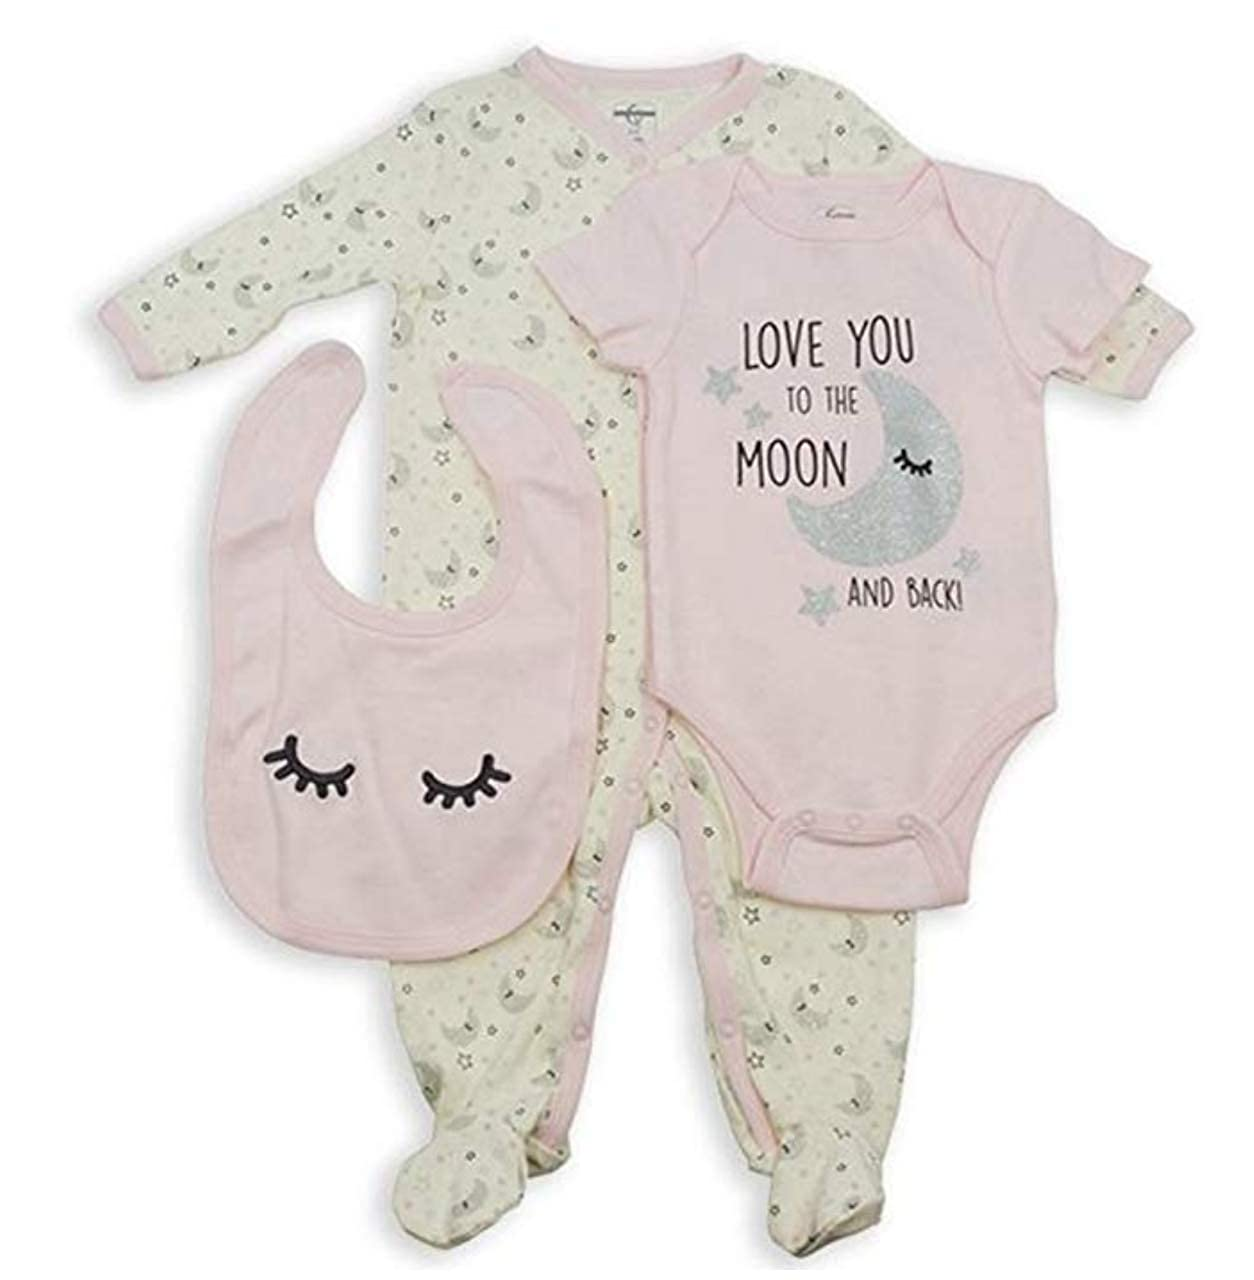 3-6M Quiltex 3-Piece Baby Girl Set Love You to The Moon Overall//Bodysuit//Bib Pink